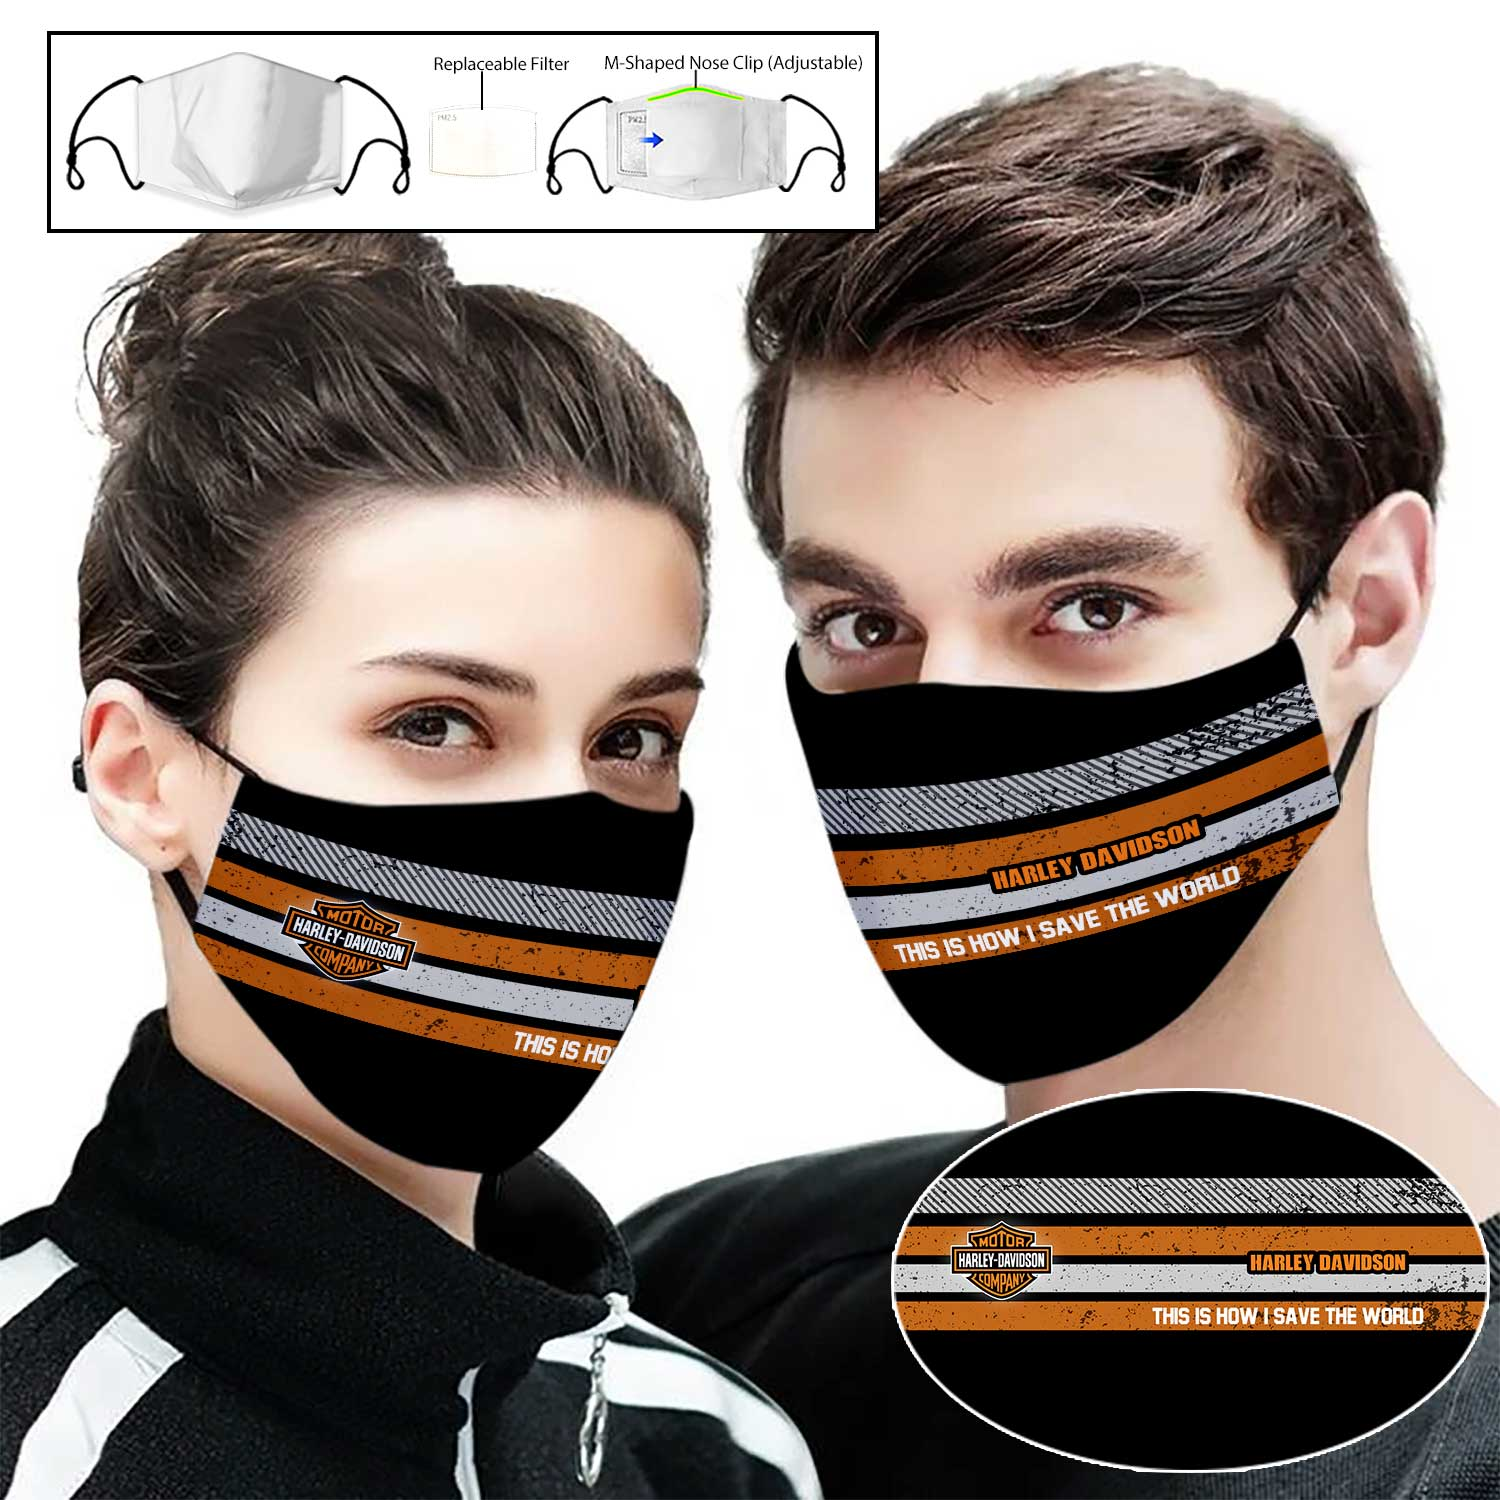 Harley davidson this is how i save the world full printing face mask 2